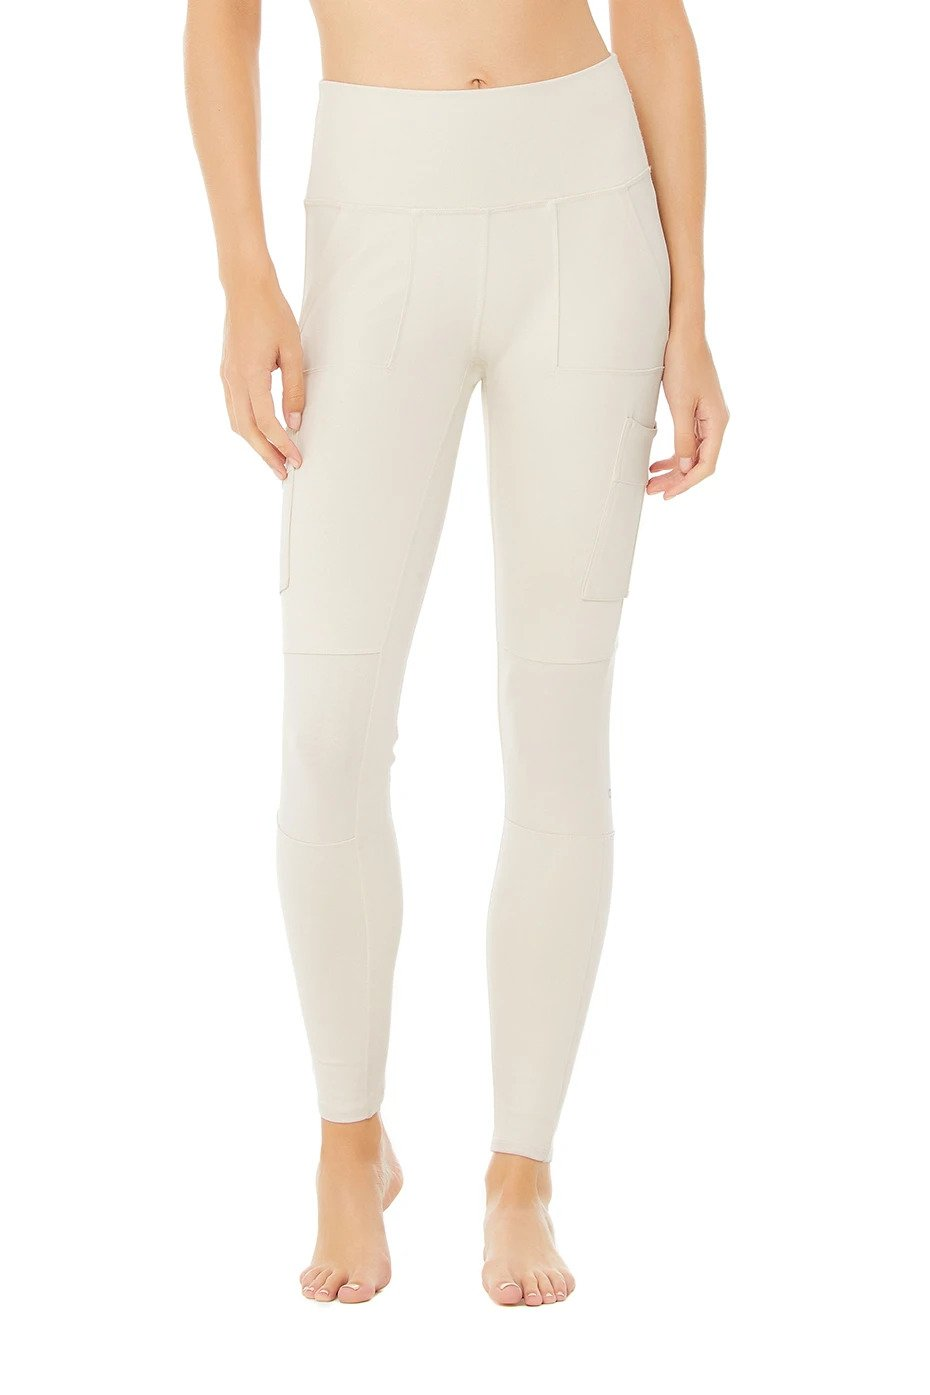 Alo Yoga XXS High-Waist Cargo Legging - Bone